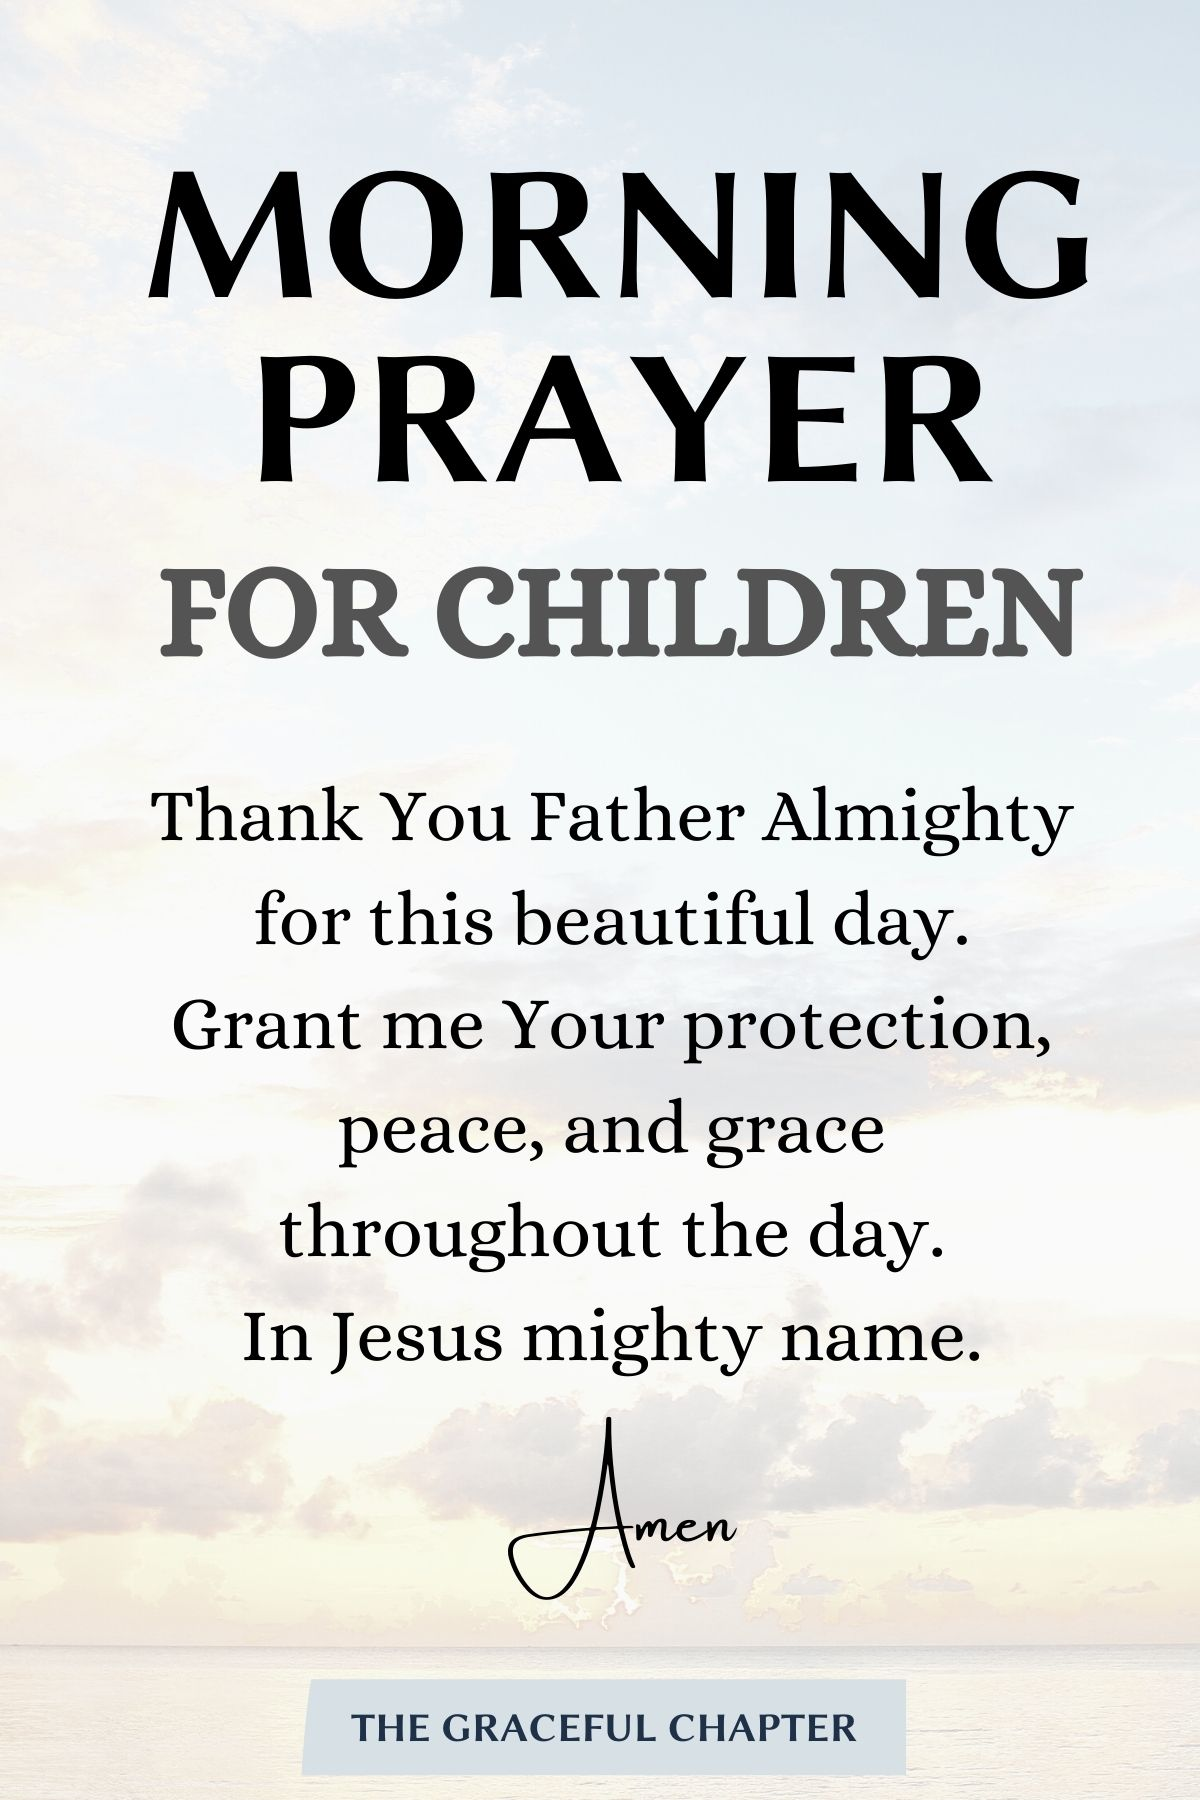 Morning prayer for children